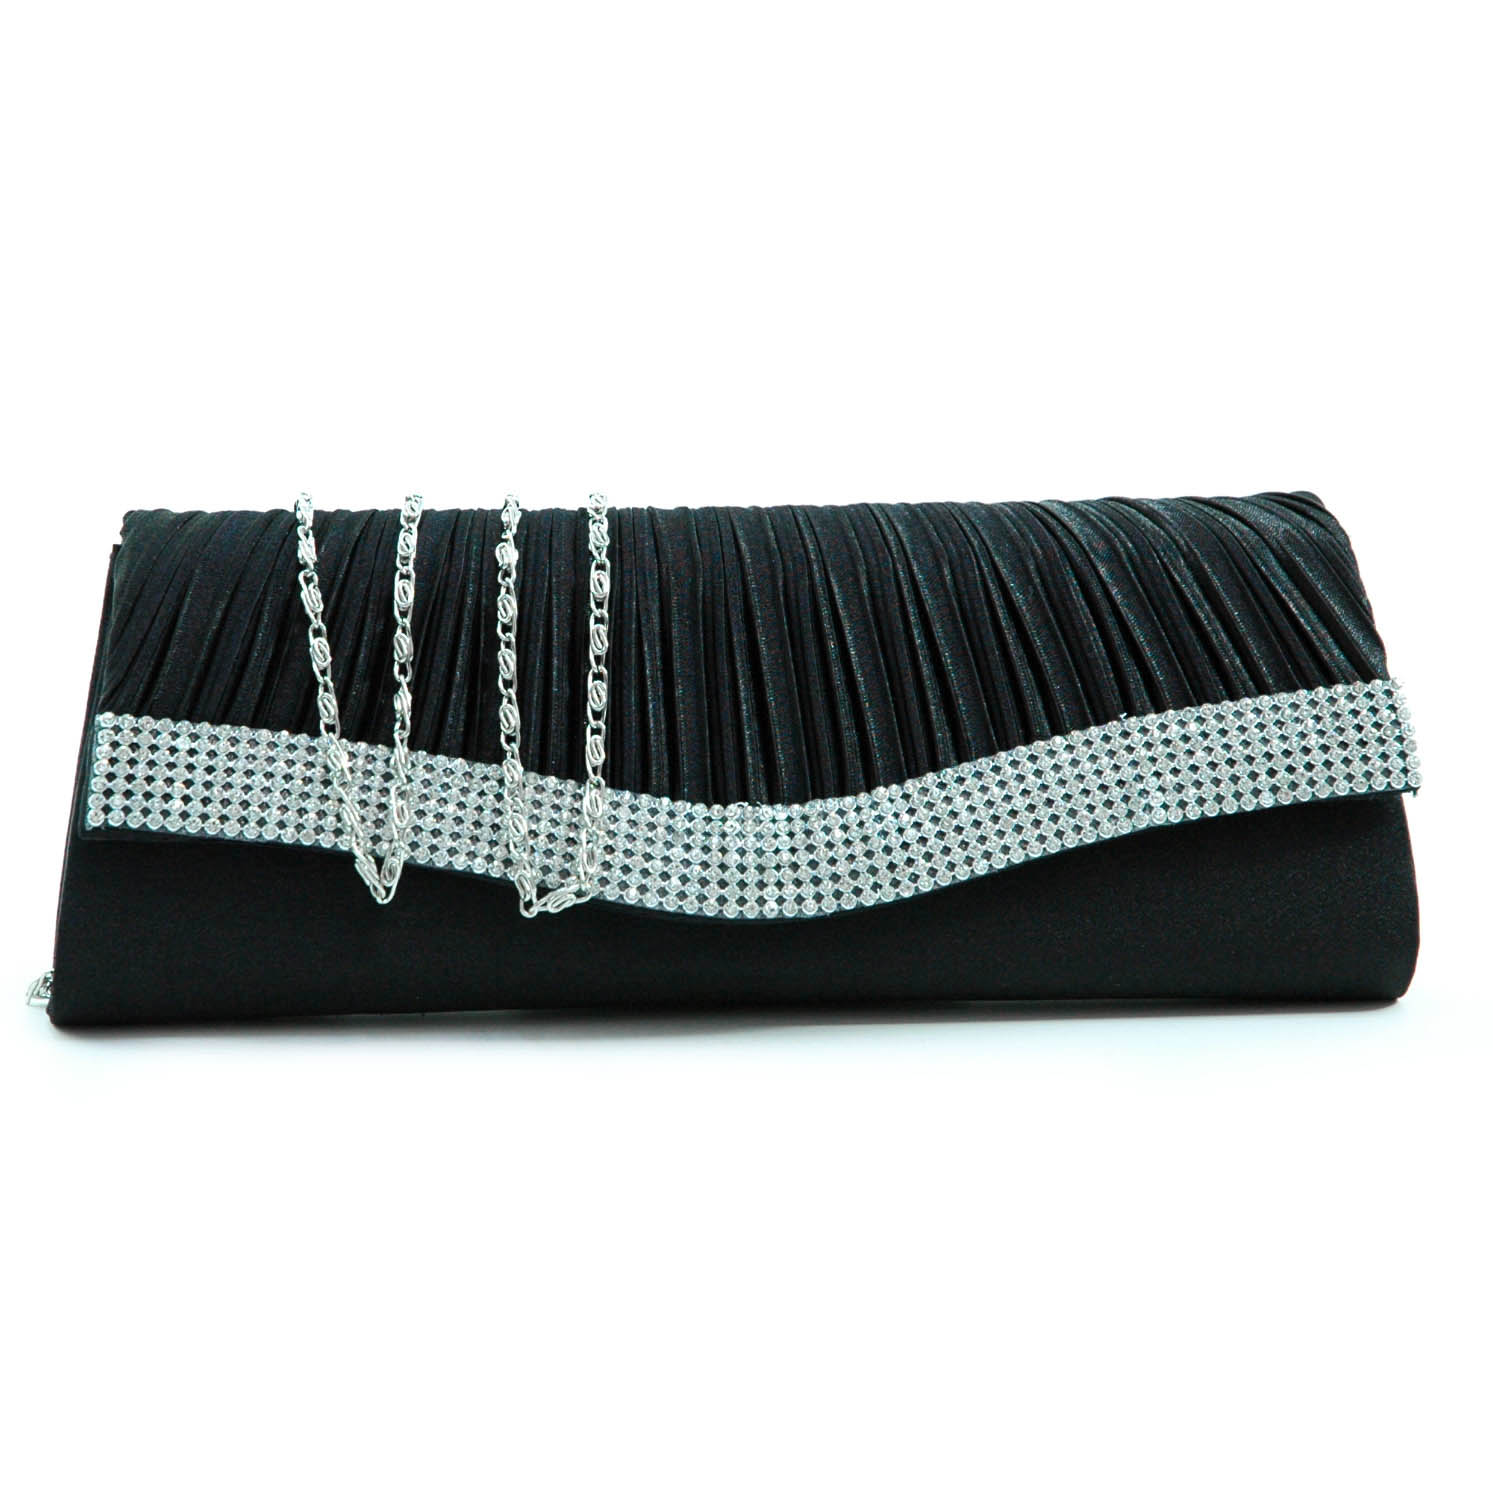 Pleated flap evening bag clutch w/ rhinestone trim